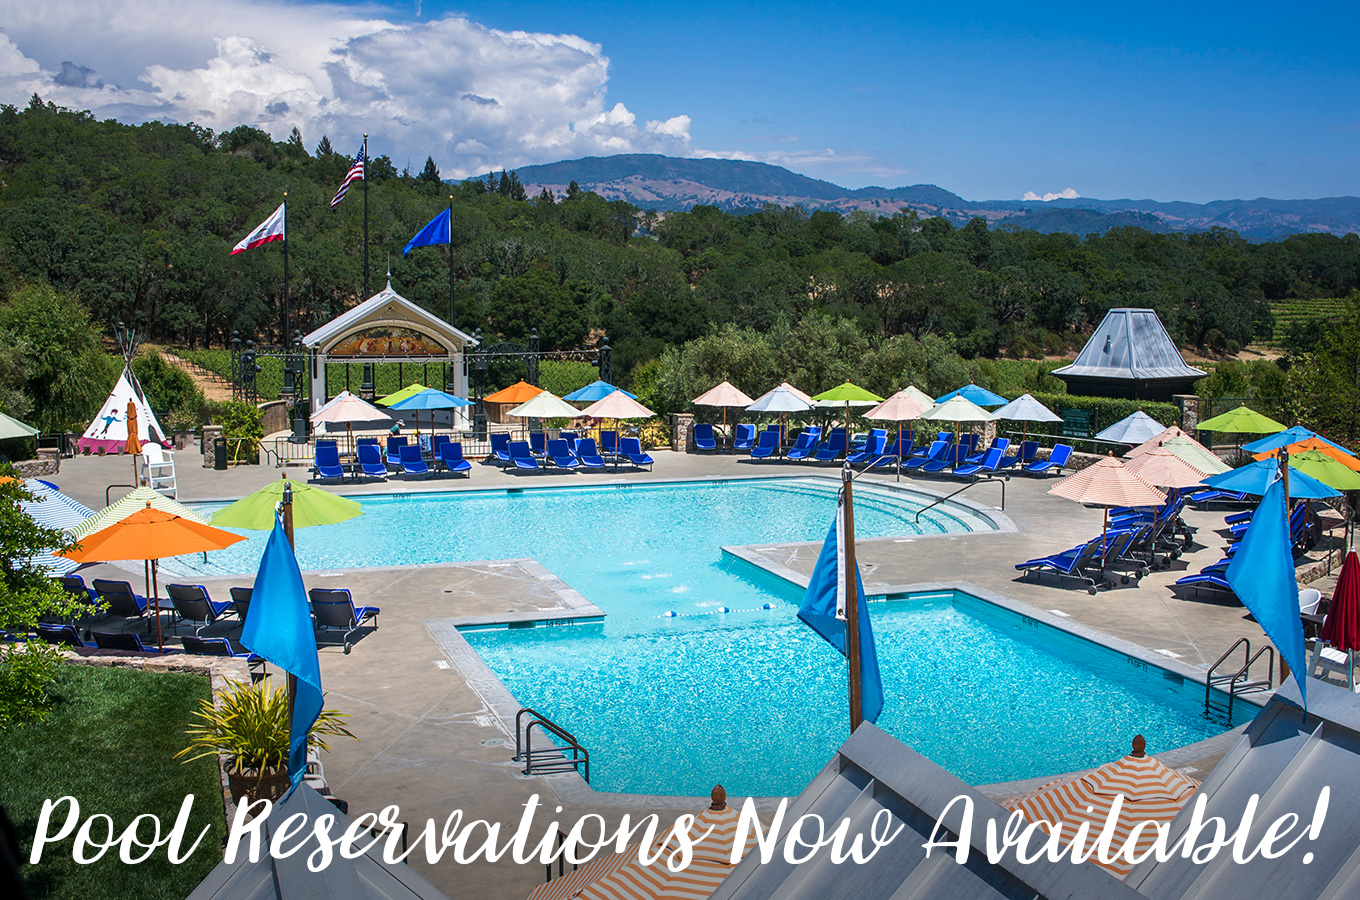 Pool Reservations Now Available!